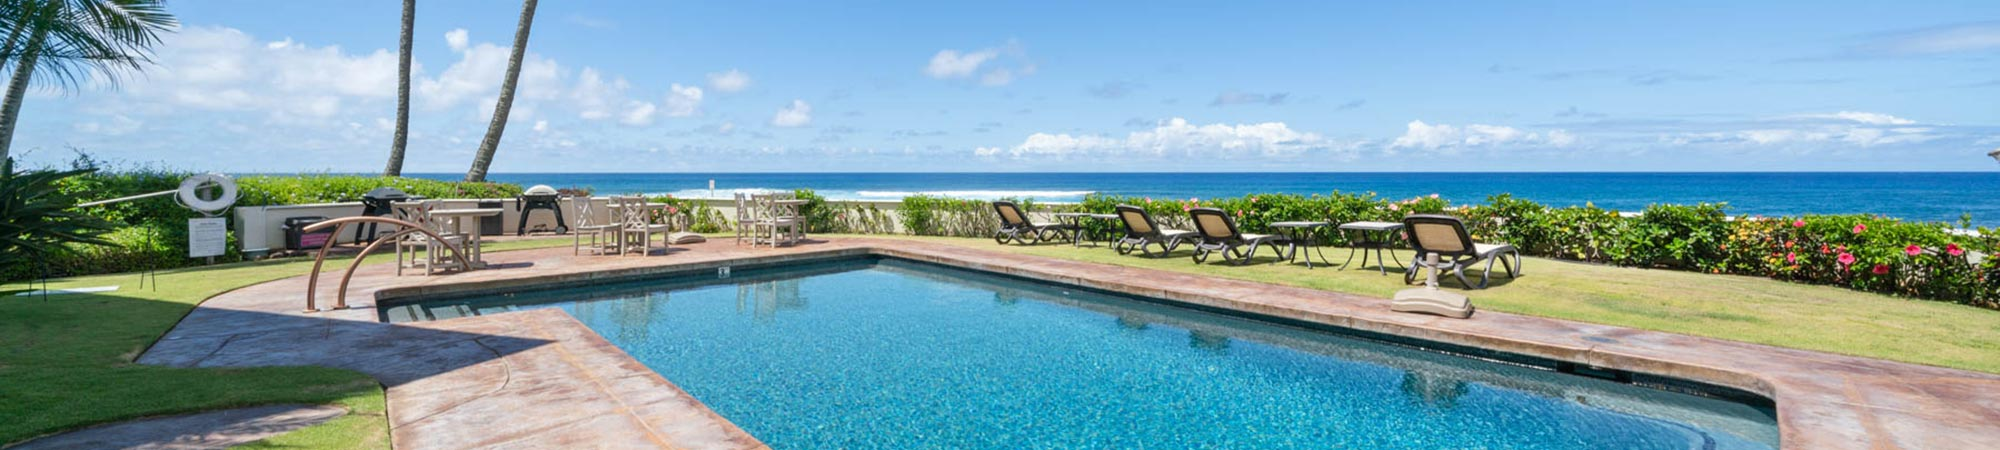 Alihi Lani vacation rental oceanfront pool